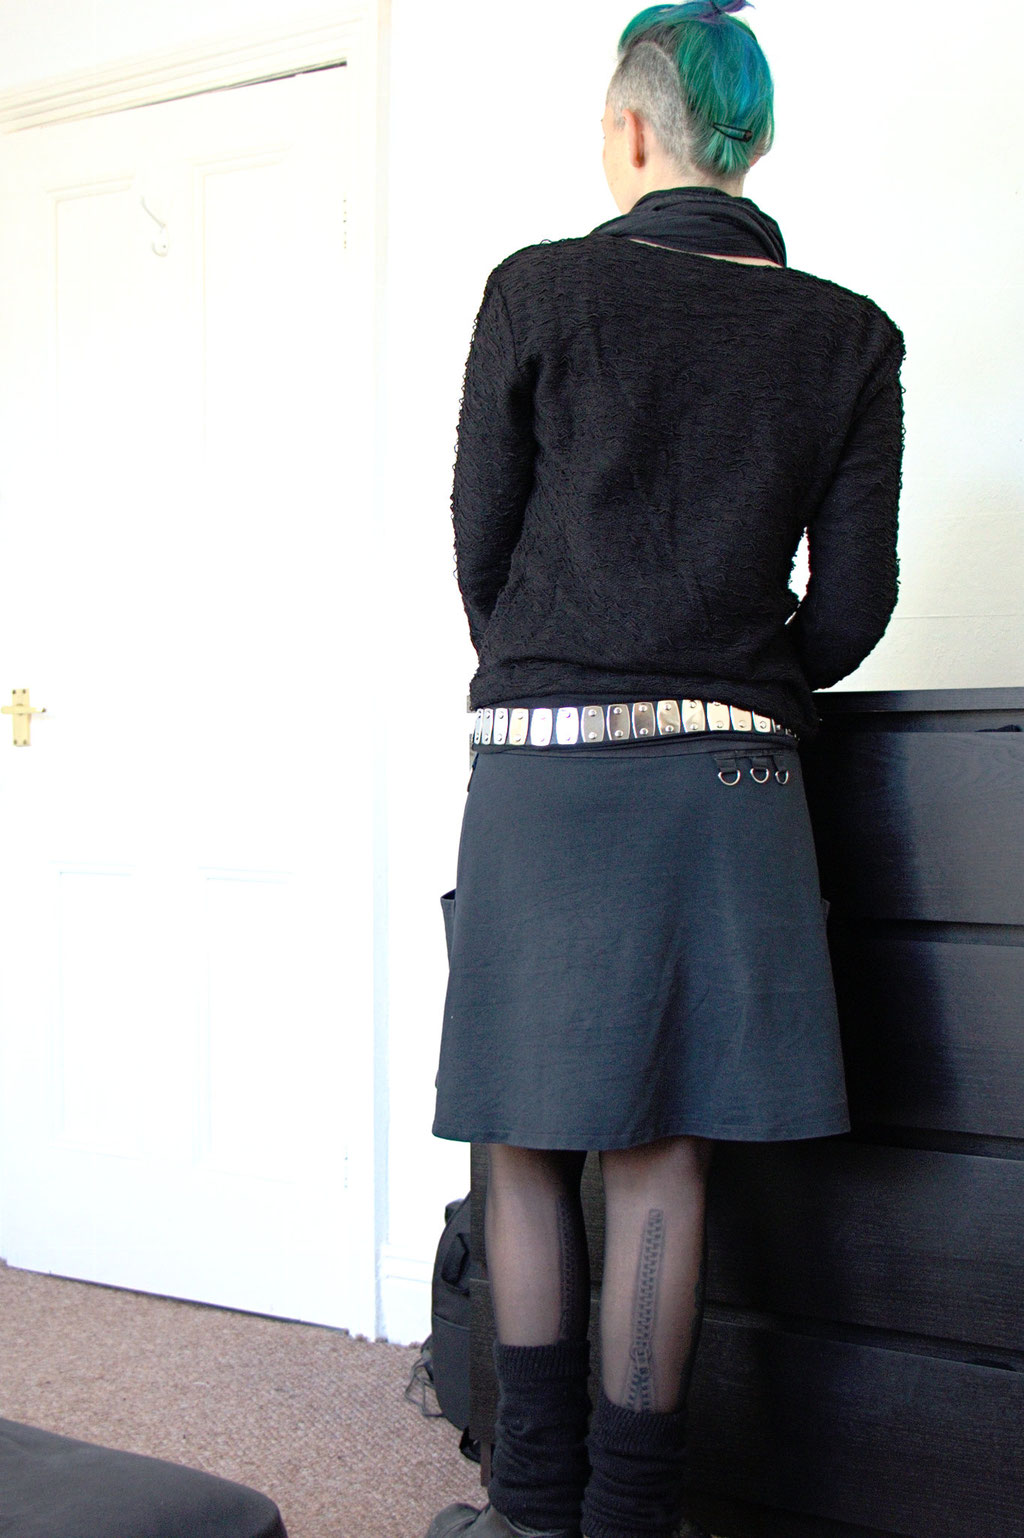 Dark post-apocalyptic outfits I wear to work - black skirt and jumper - Zebraspider Eco Anti-Fashion